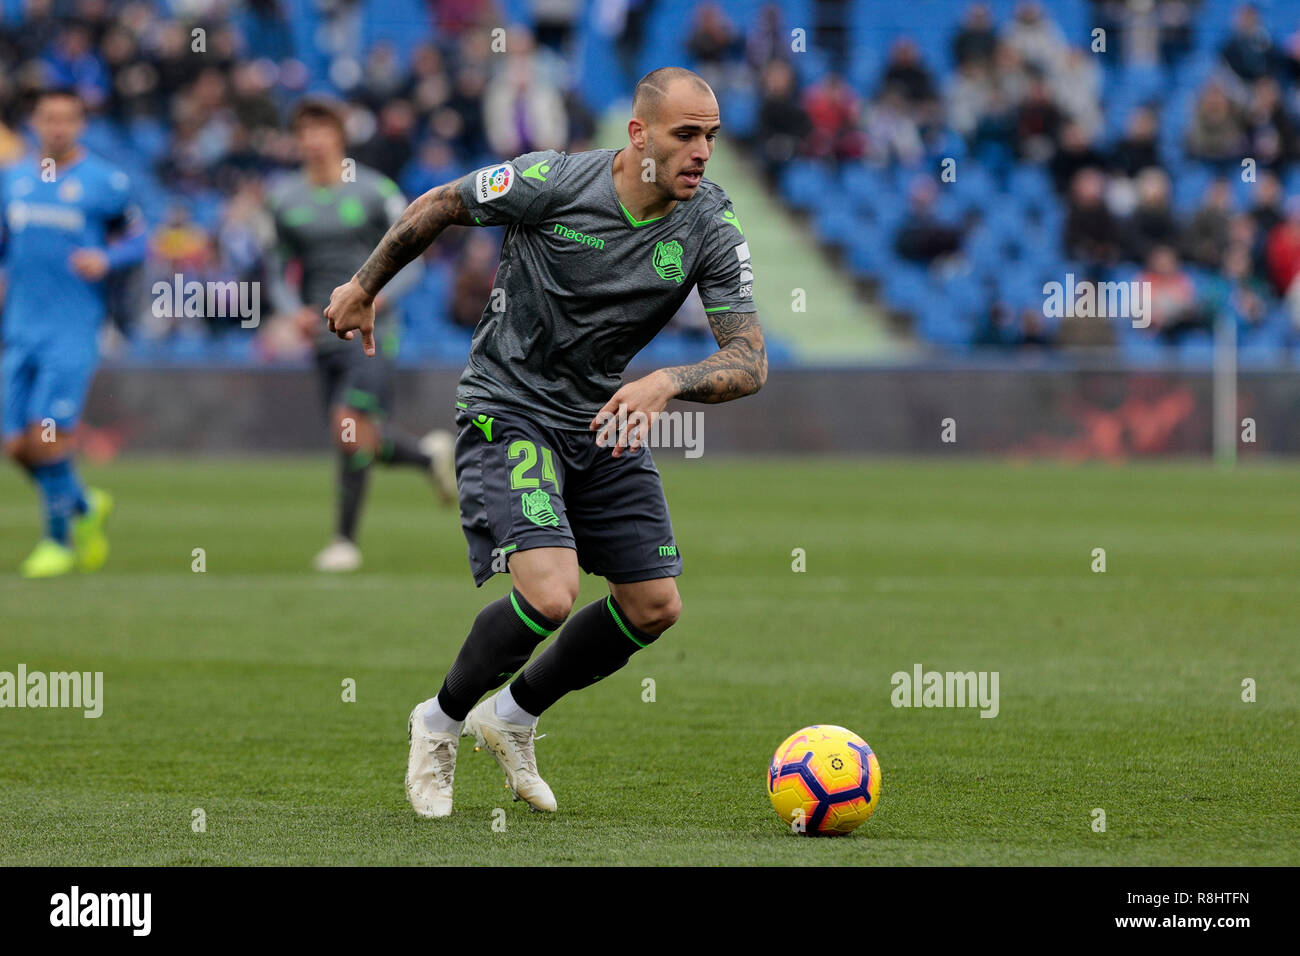 Real Sociedad's Sandro seen in action during the La Liga football match between Getafe CF and Real Sociedad at the Coliseum Alfonso Perez in Getafe, Spain. ( Final score; Getafe CF 1:0 Real Sociedad ) - Stock Image